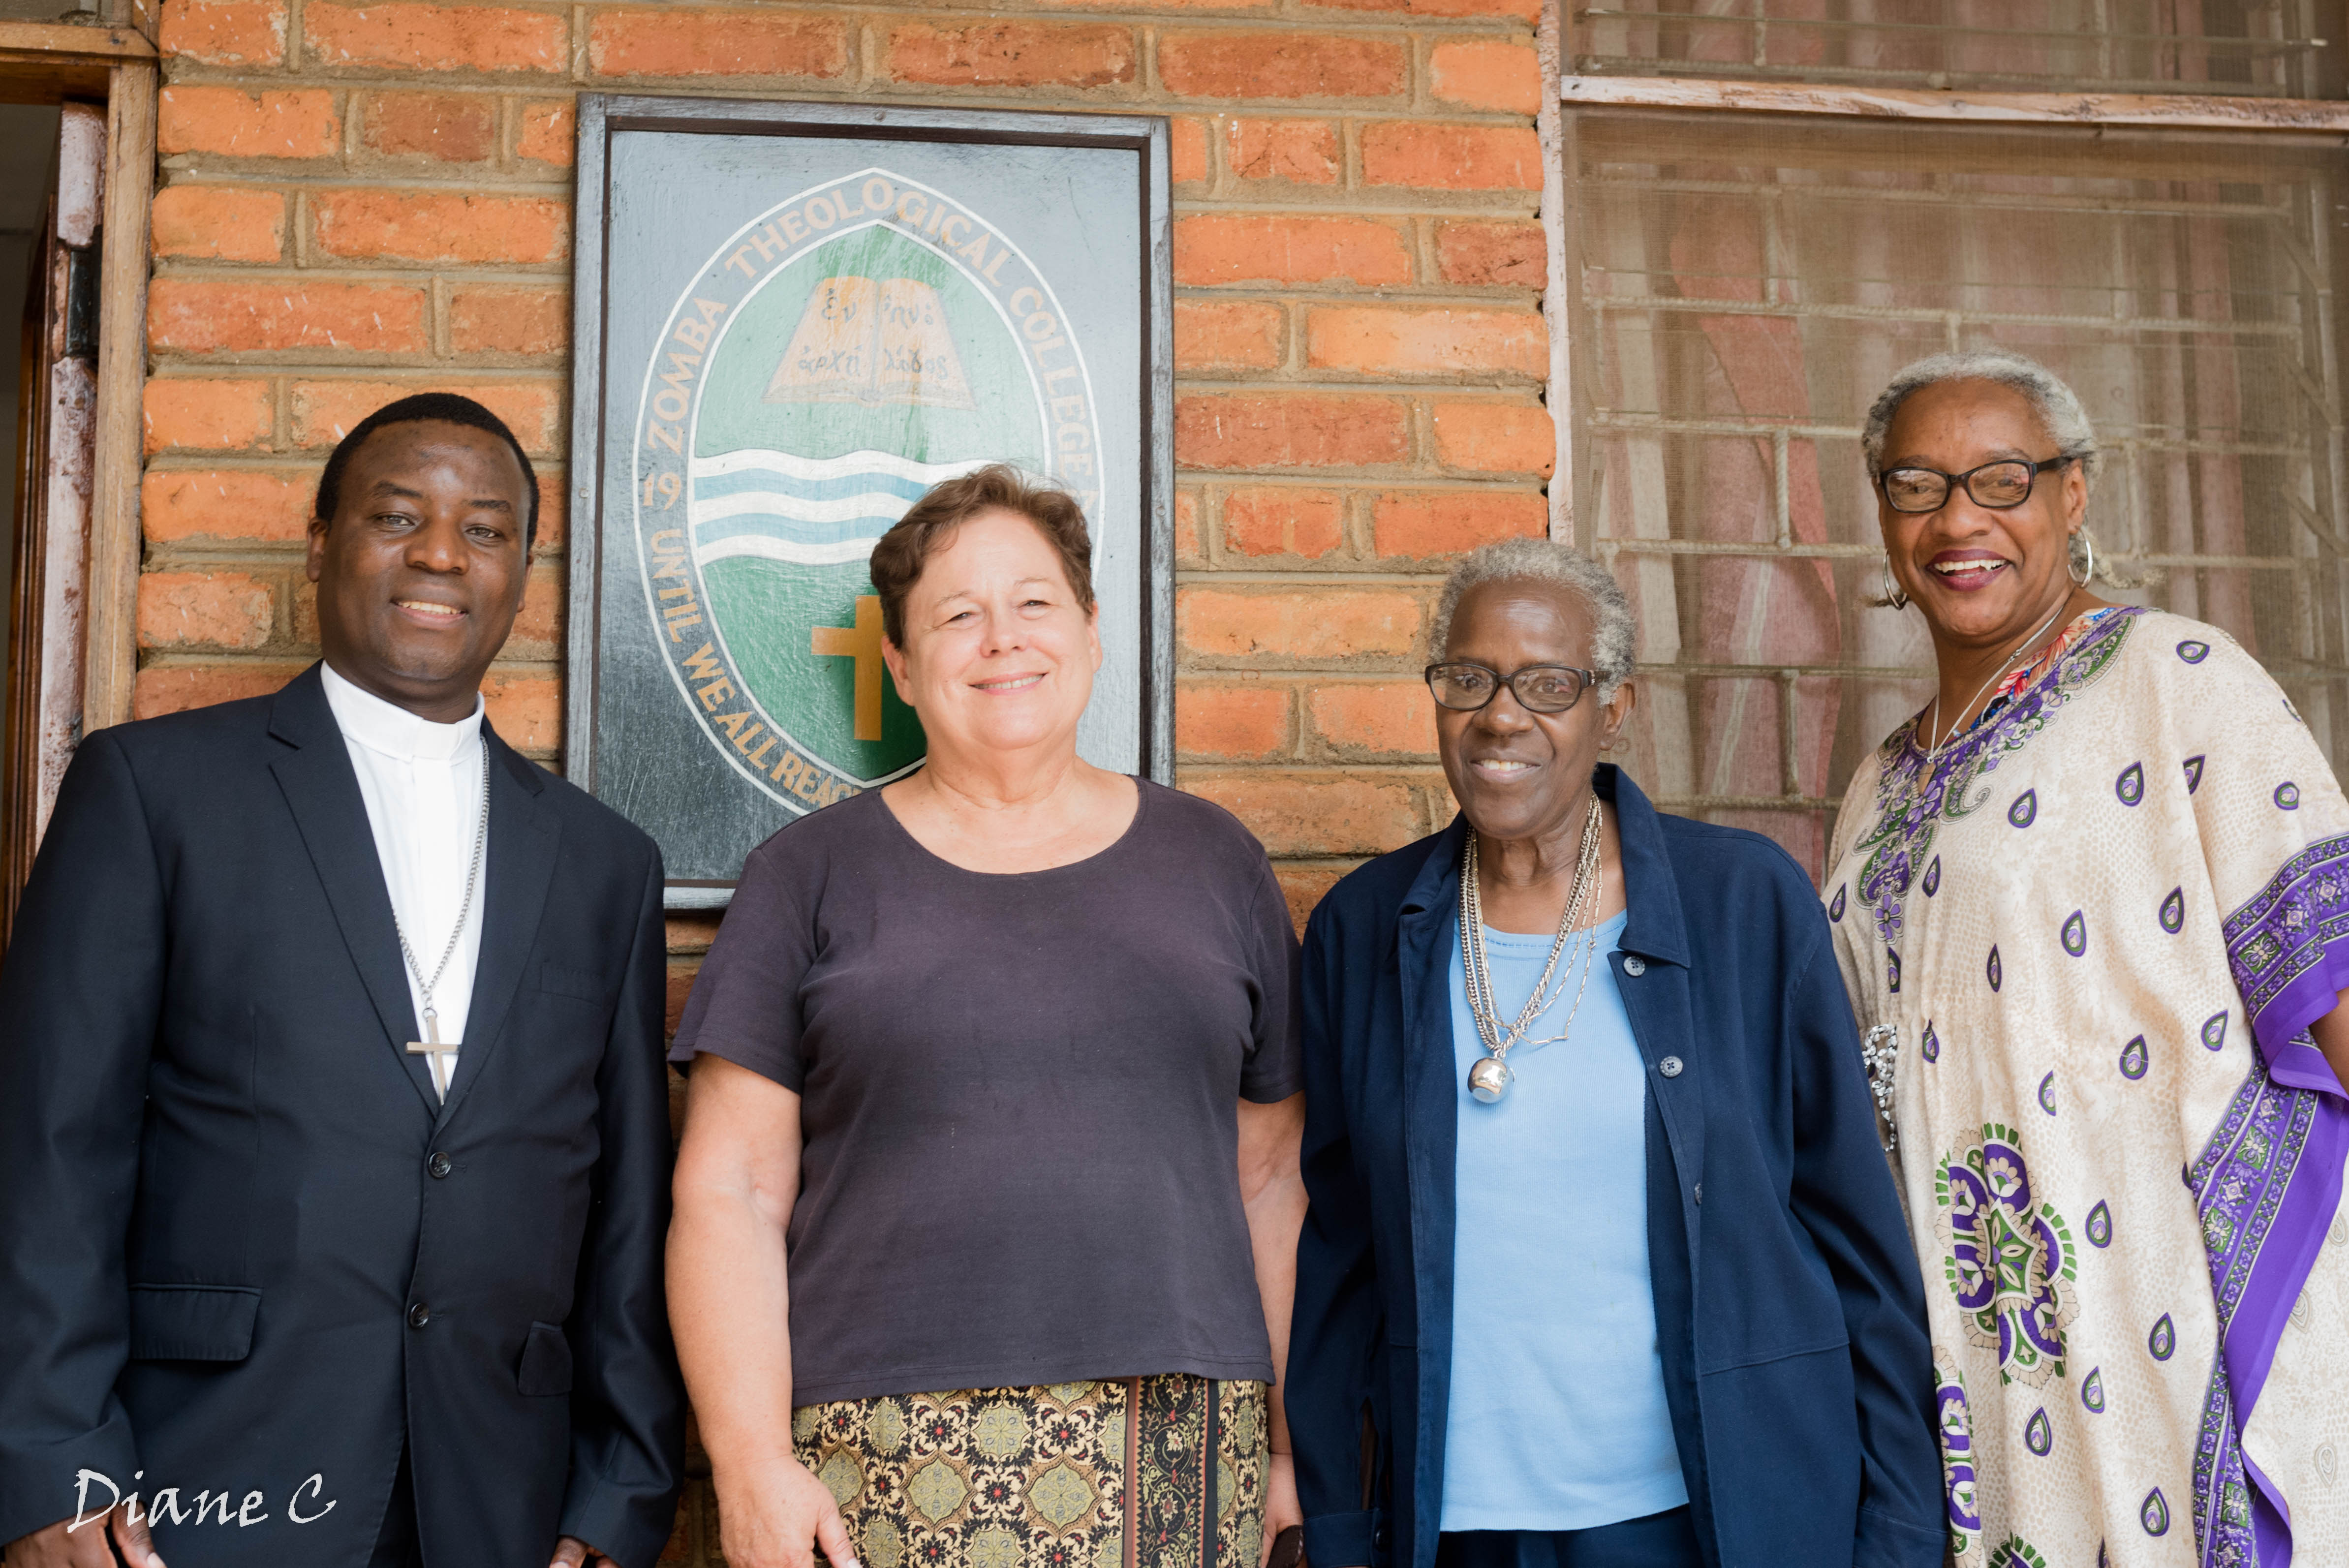 From left: Dr. Takuze Chitsulo, principal, Zomba Theological College; Nancy; Dr. Donna Sloan, who has just ended service as a long-term volunteer lecturer at Zomba; and Paula Cooper in southern Malawi.